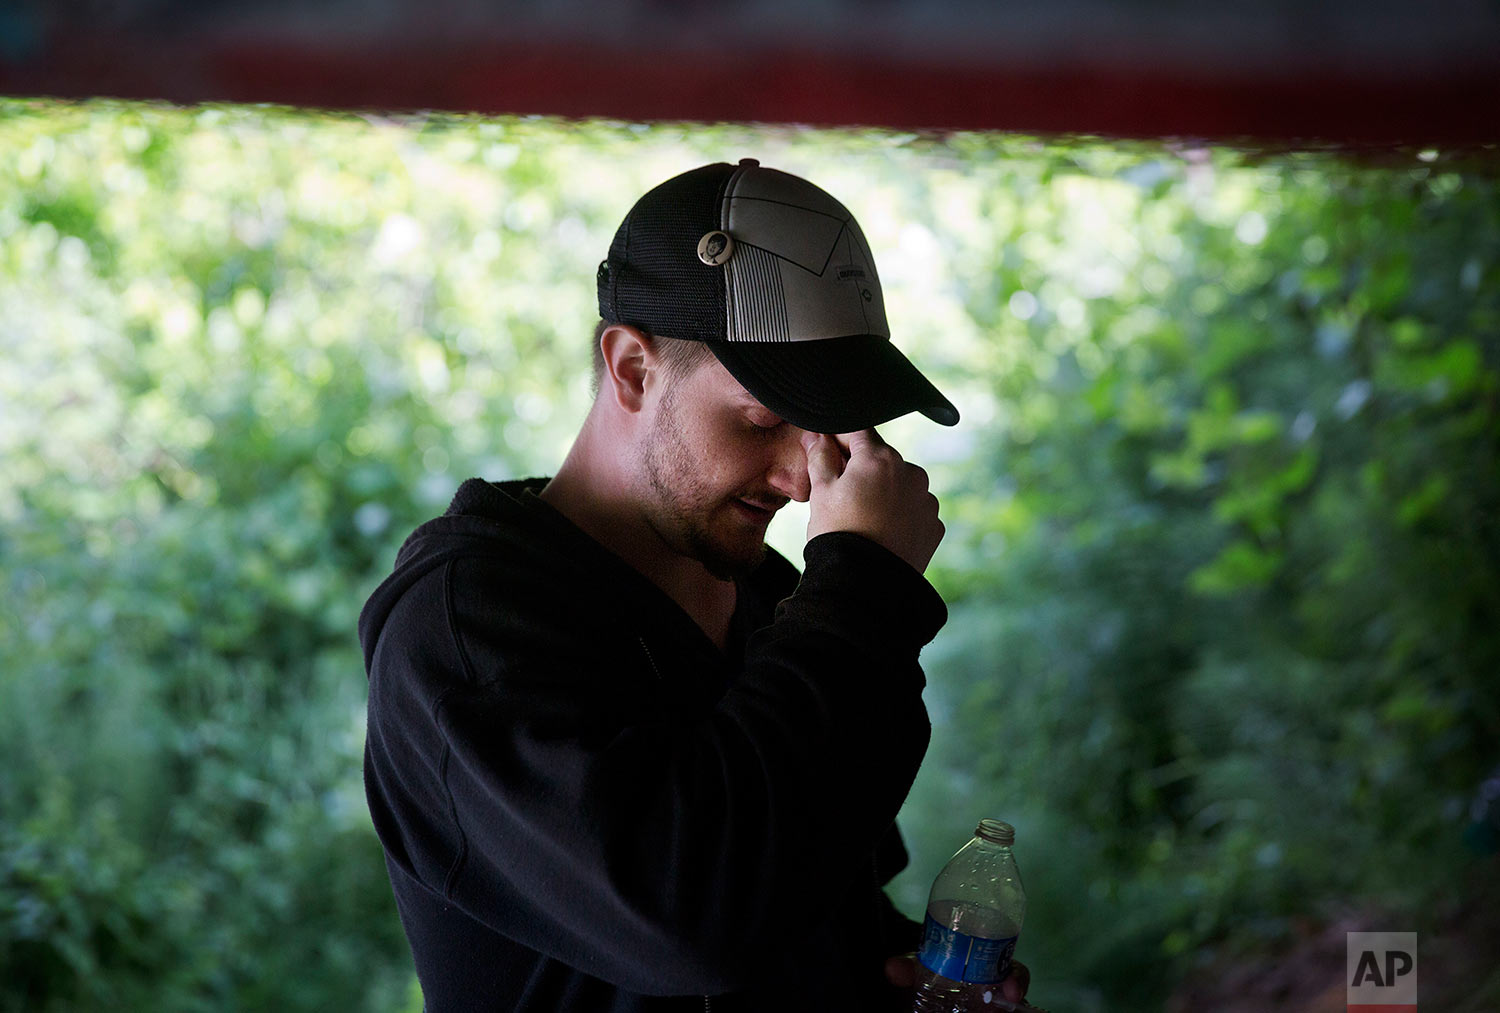 """Forrest Wood, 24, pauses after injecting heroin into this arm under a bridge along the Wishkah River at Kurt Cobain Memorial Park in Aberdeen, Wash., Tuesday, June 13, 2017. He's tried to quit; the drug only delays the sickness and shame that set in when he doesn't shoot up. """"I'm trying to get myself to feel like I have some sort of purpose,"""" he said. """"I just want to be happy, that's all."""" (AP Photo/David Goldman)"""